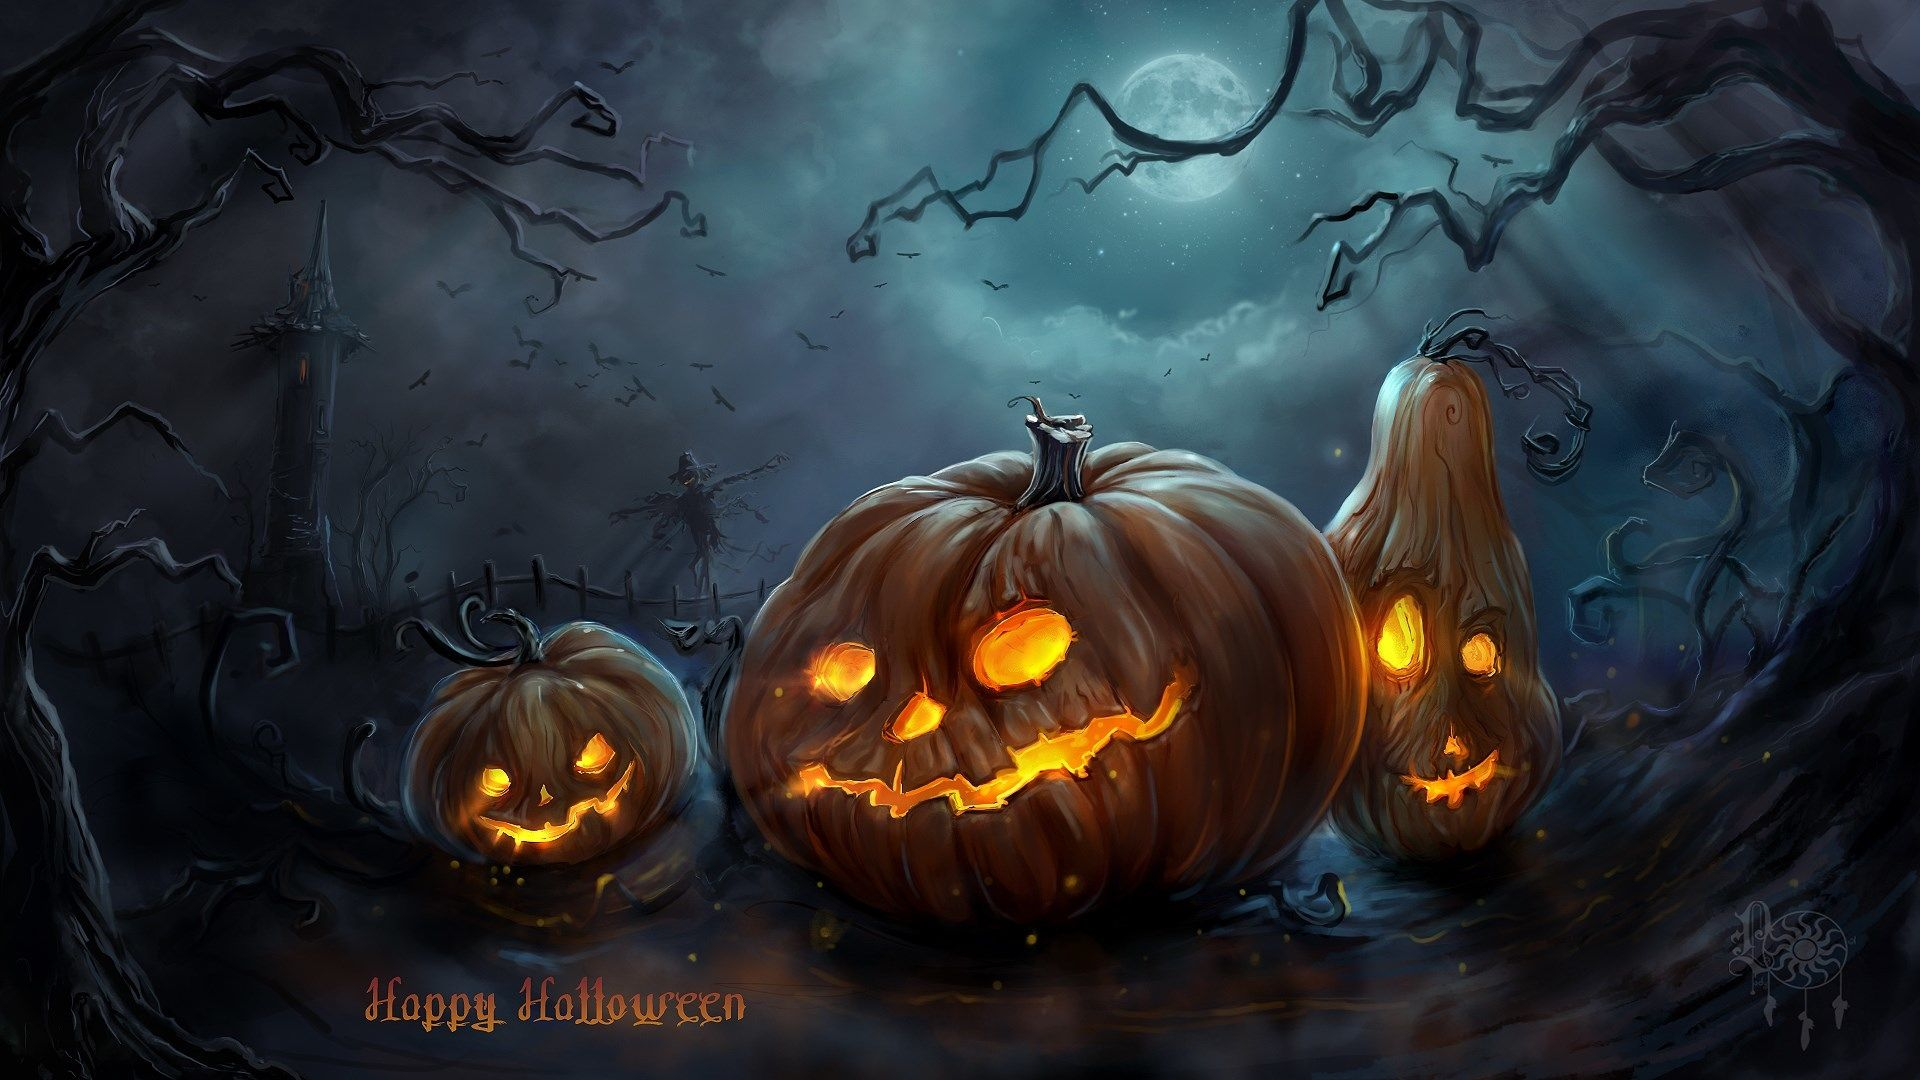 Download Halloween Pictures Images To Draw And For Wallpapers Sfondi Di Halloween Halloween Pauroso Quadri Halloween